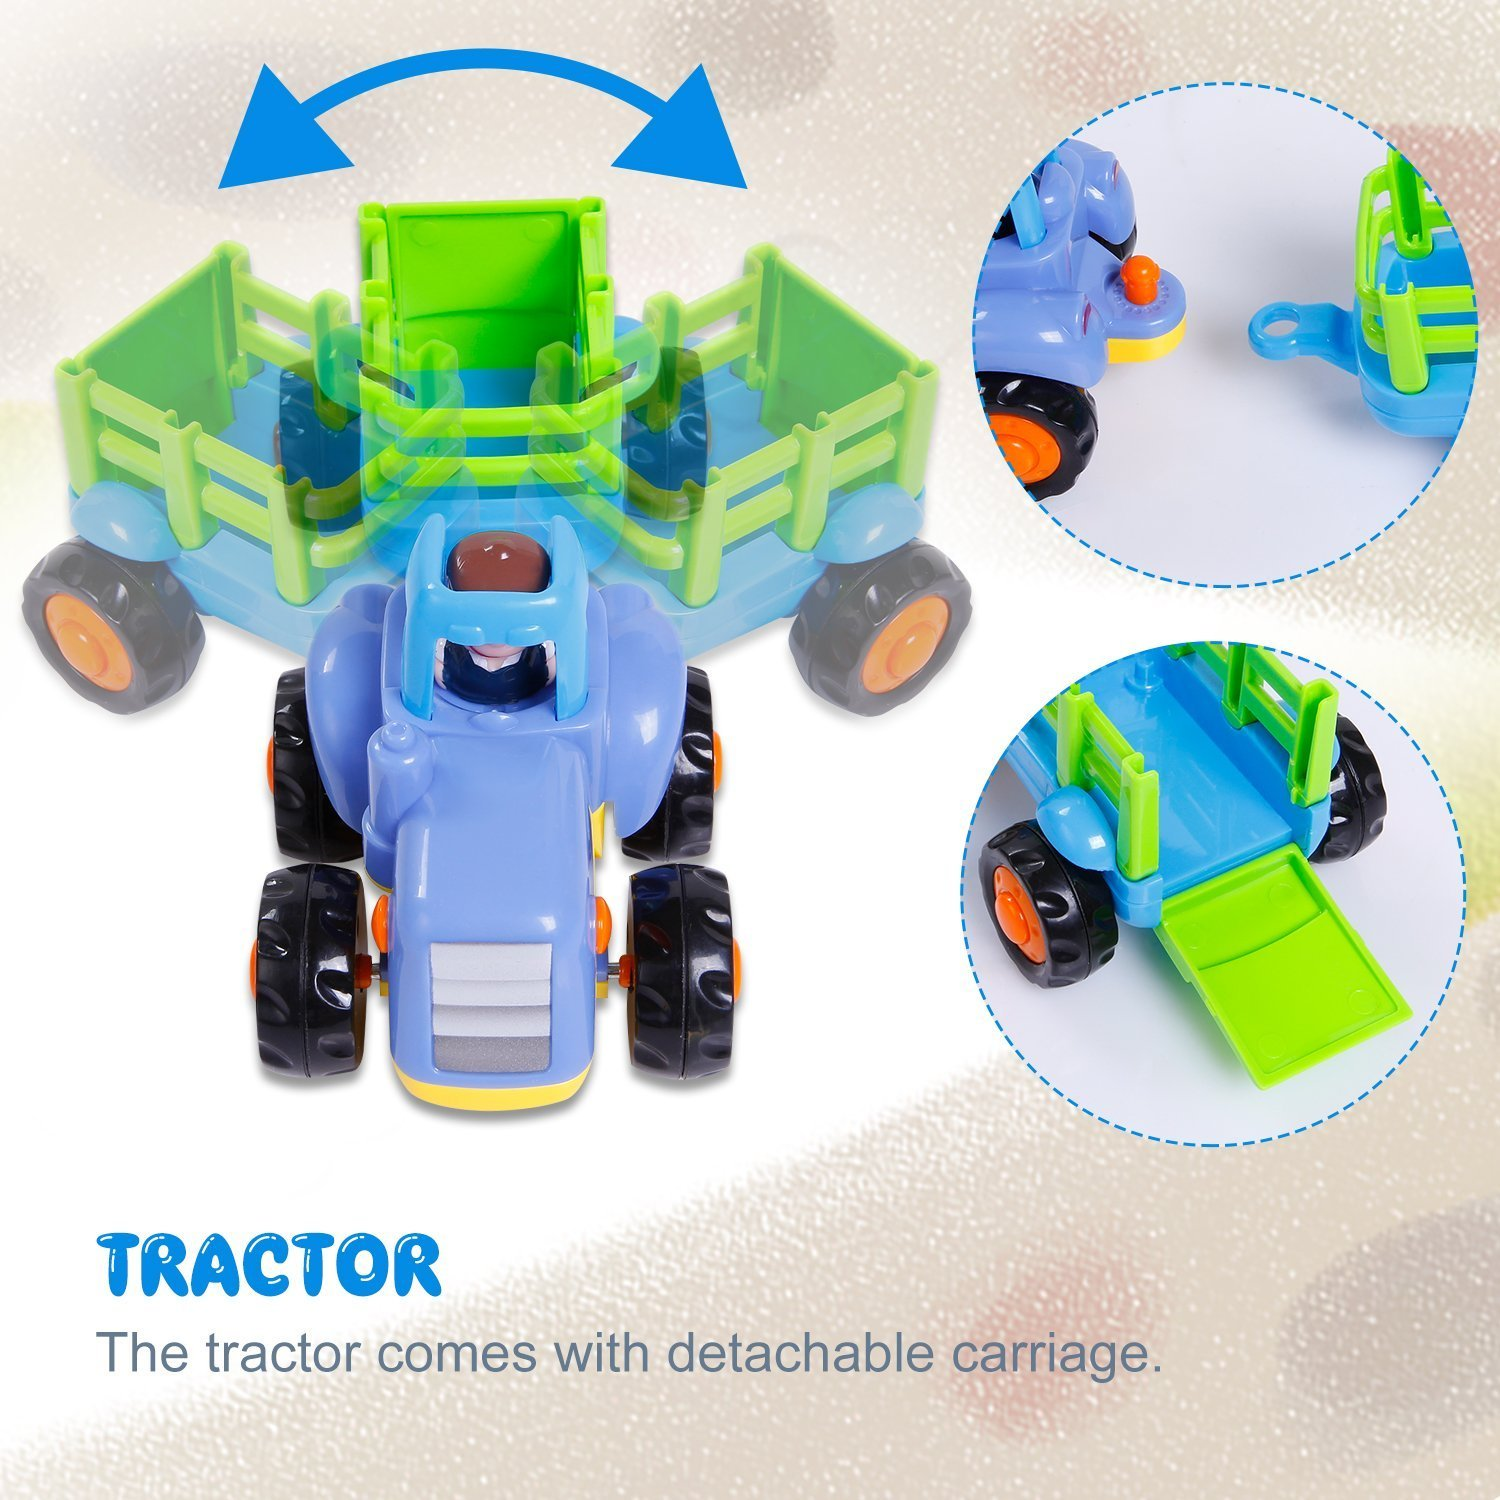 Friction Powered Cars Push and Go Car Construction Vehicles Toys Set of 4 Tractor,Bulldozer,Cement Mixer Truck,Dumper Push Back Cartoon Play for  2 3 Years Old Boys Toddlers Kids Gift by GoStock (Image #8)